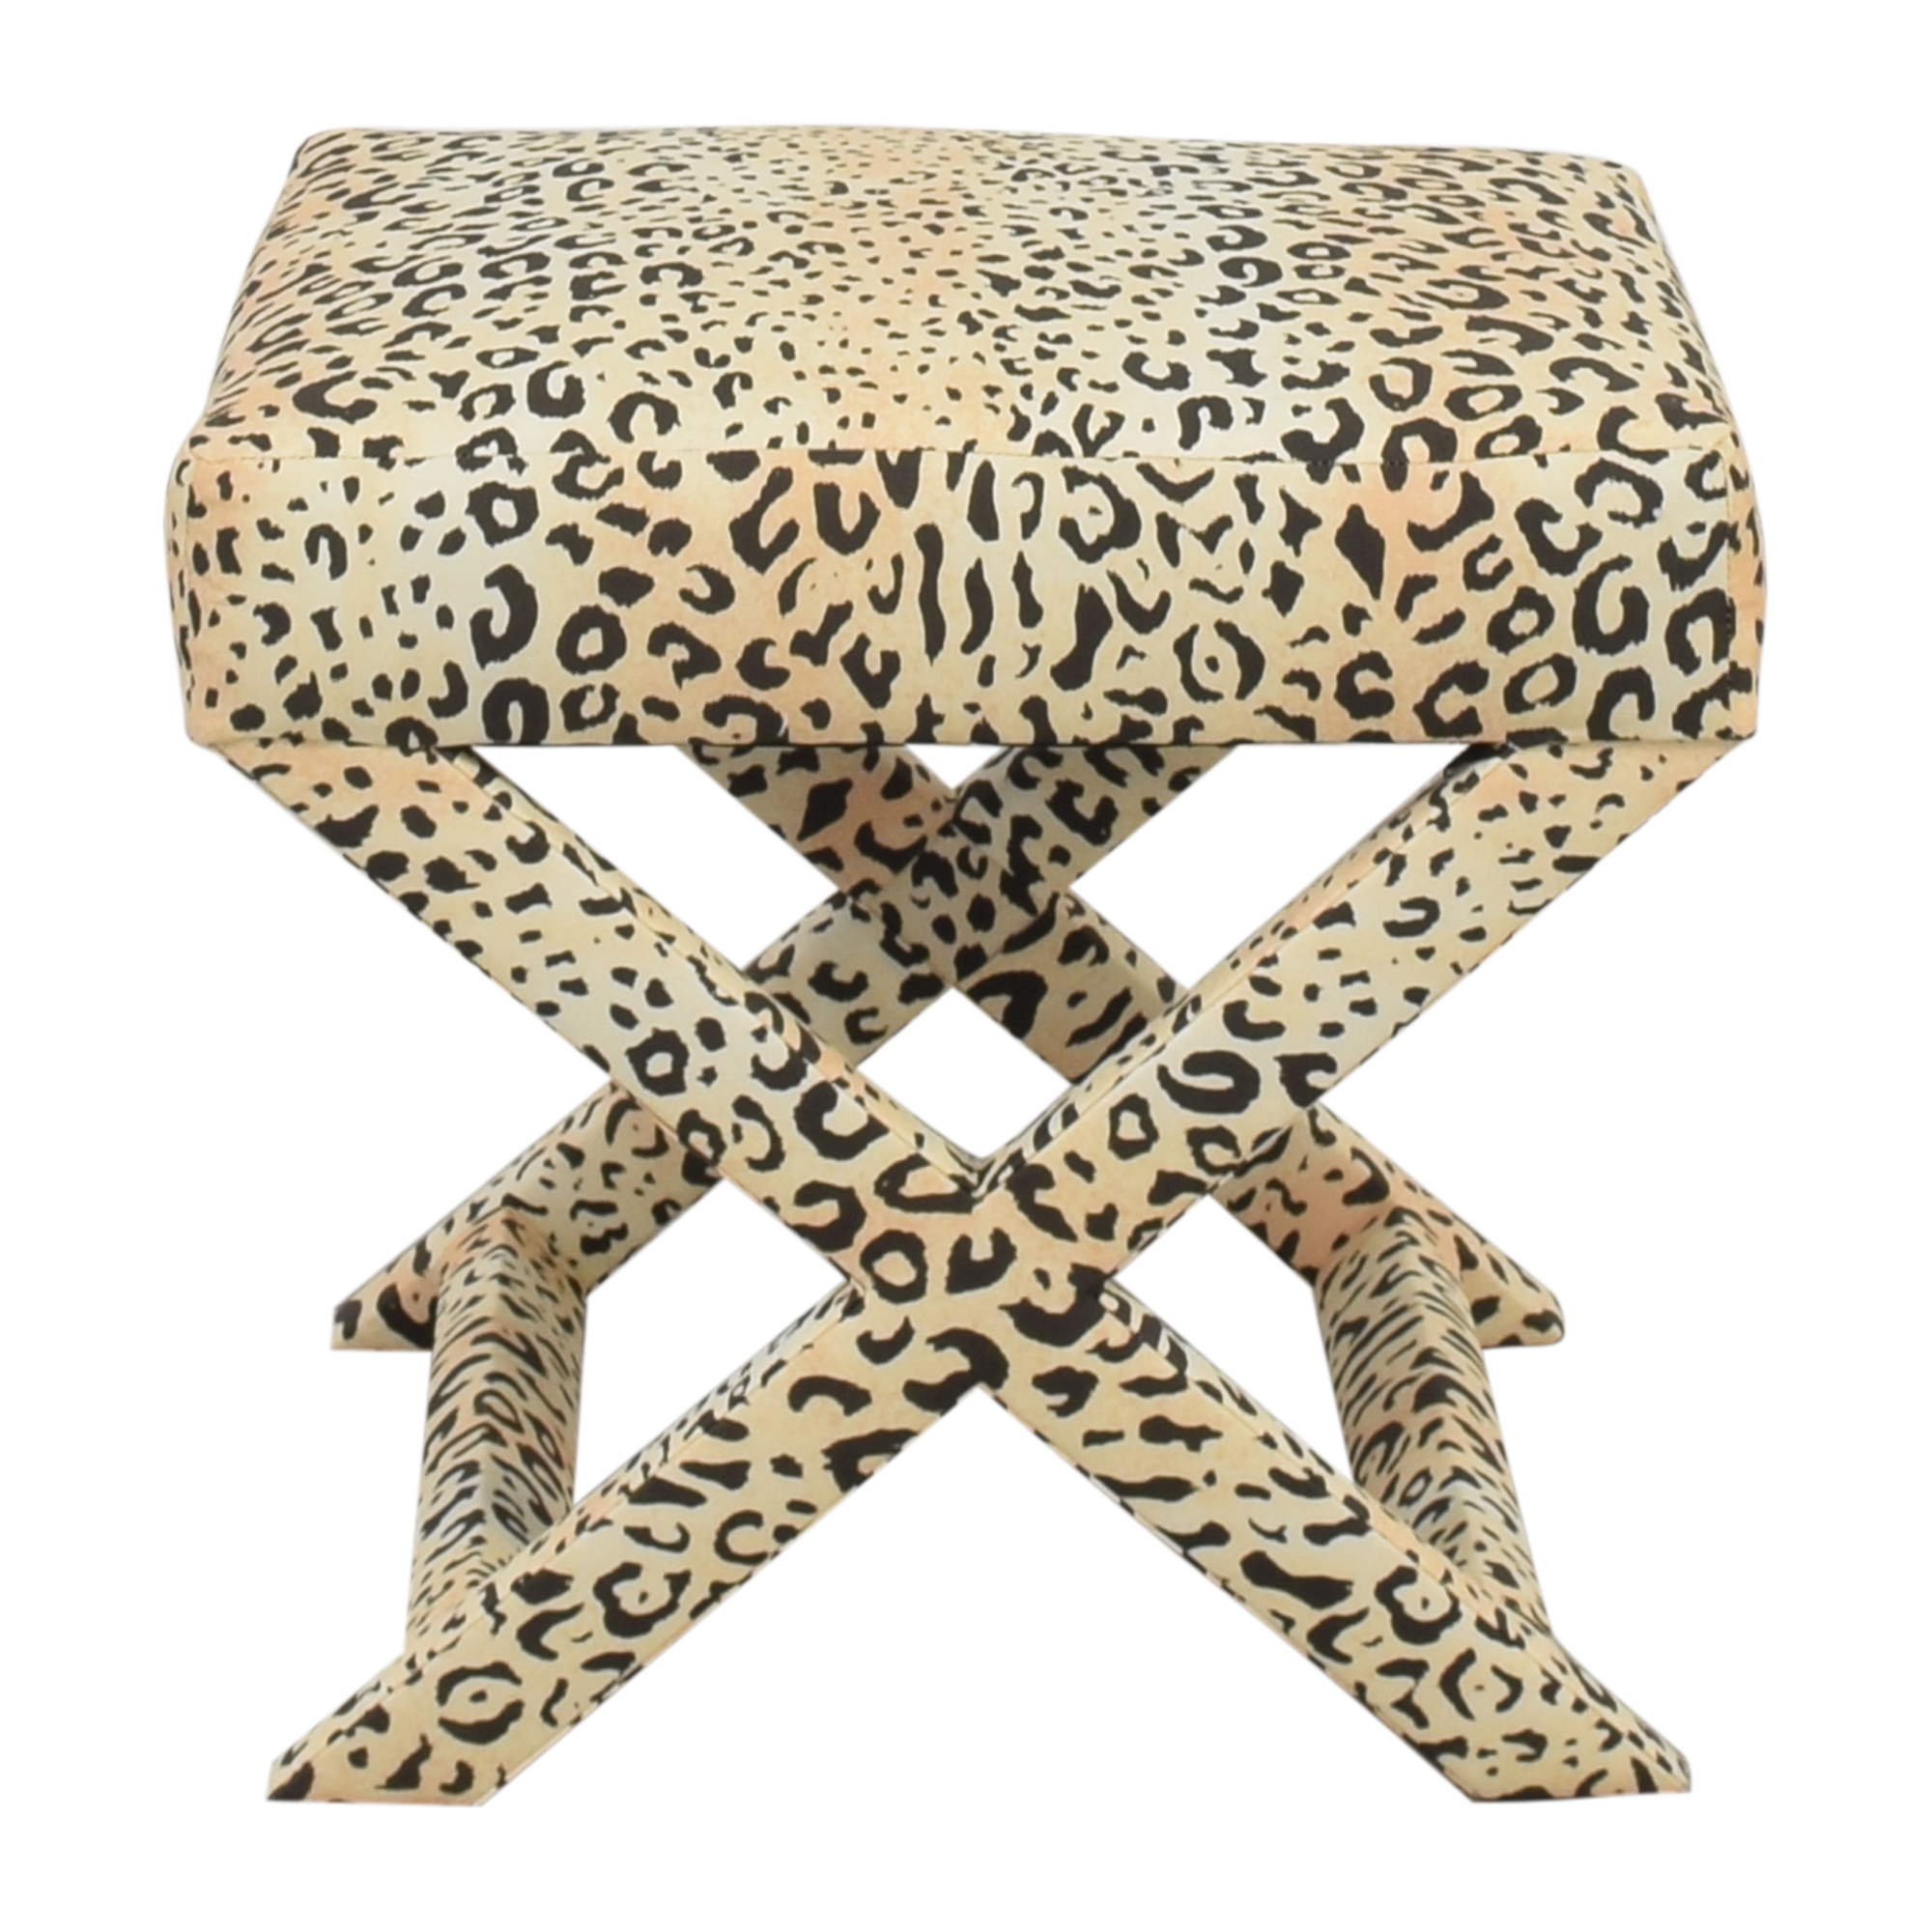 The Inside The Inside X-Bench in Leopard Ottomans